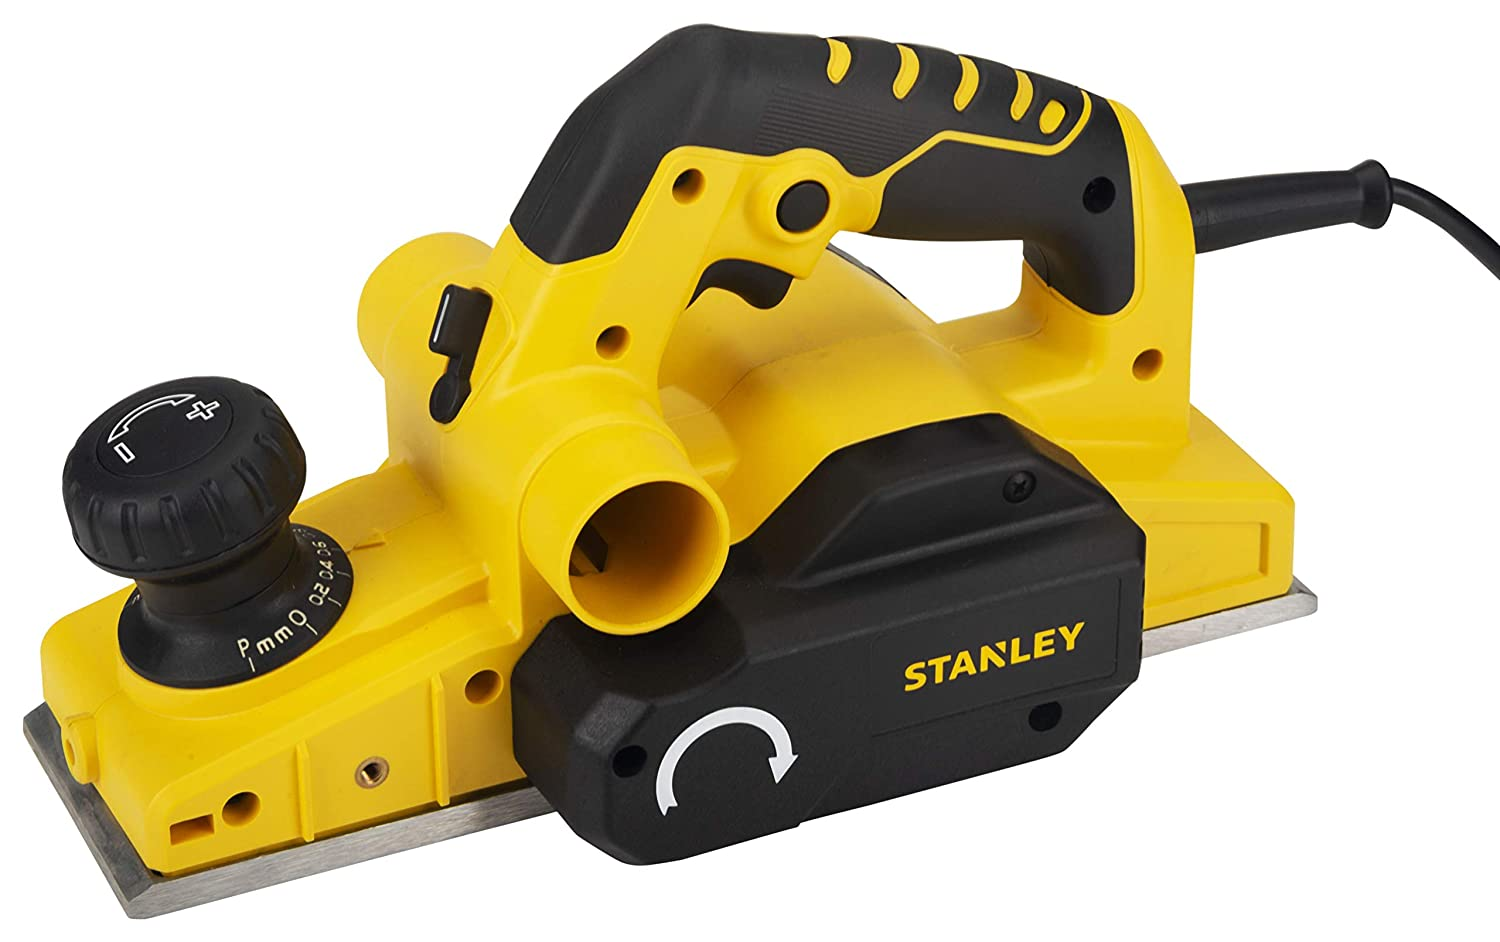 Stanley 750-Watt 2mm Planer (Yellow and Black)